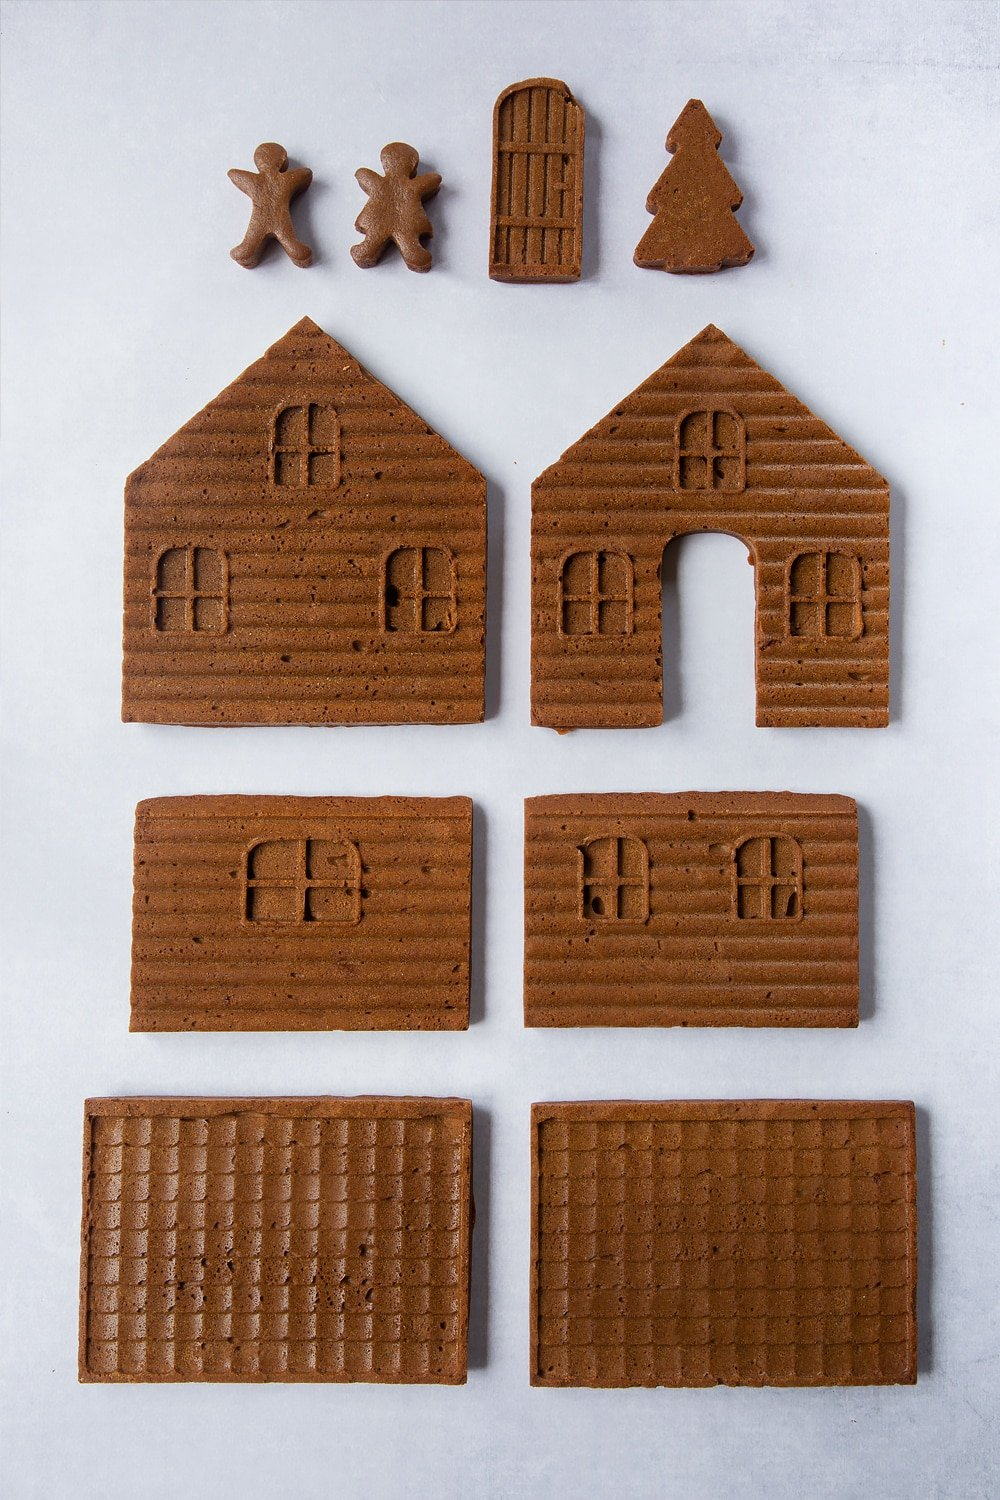 Freshly baked pieces of gingerbread dough, made in a silicone mould so that they form the walls, roof, door, people and Christmas tree to construct into a gingerbread house.